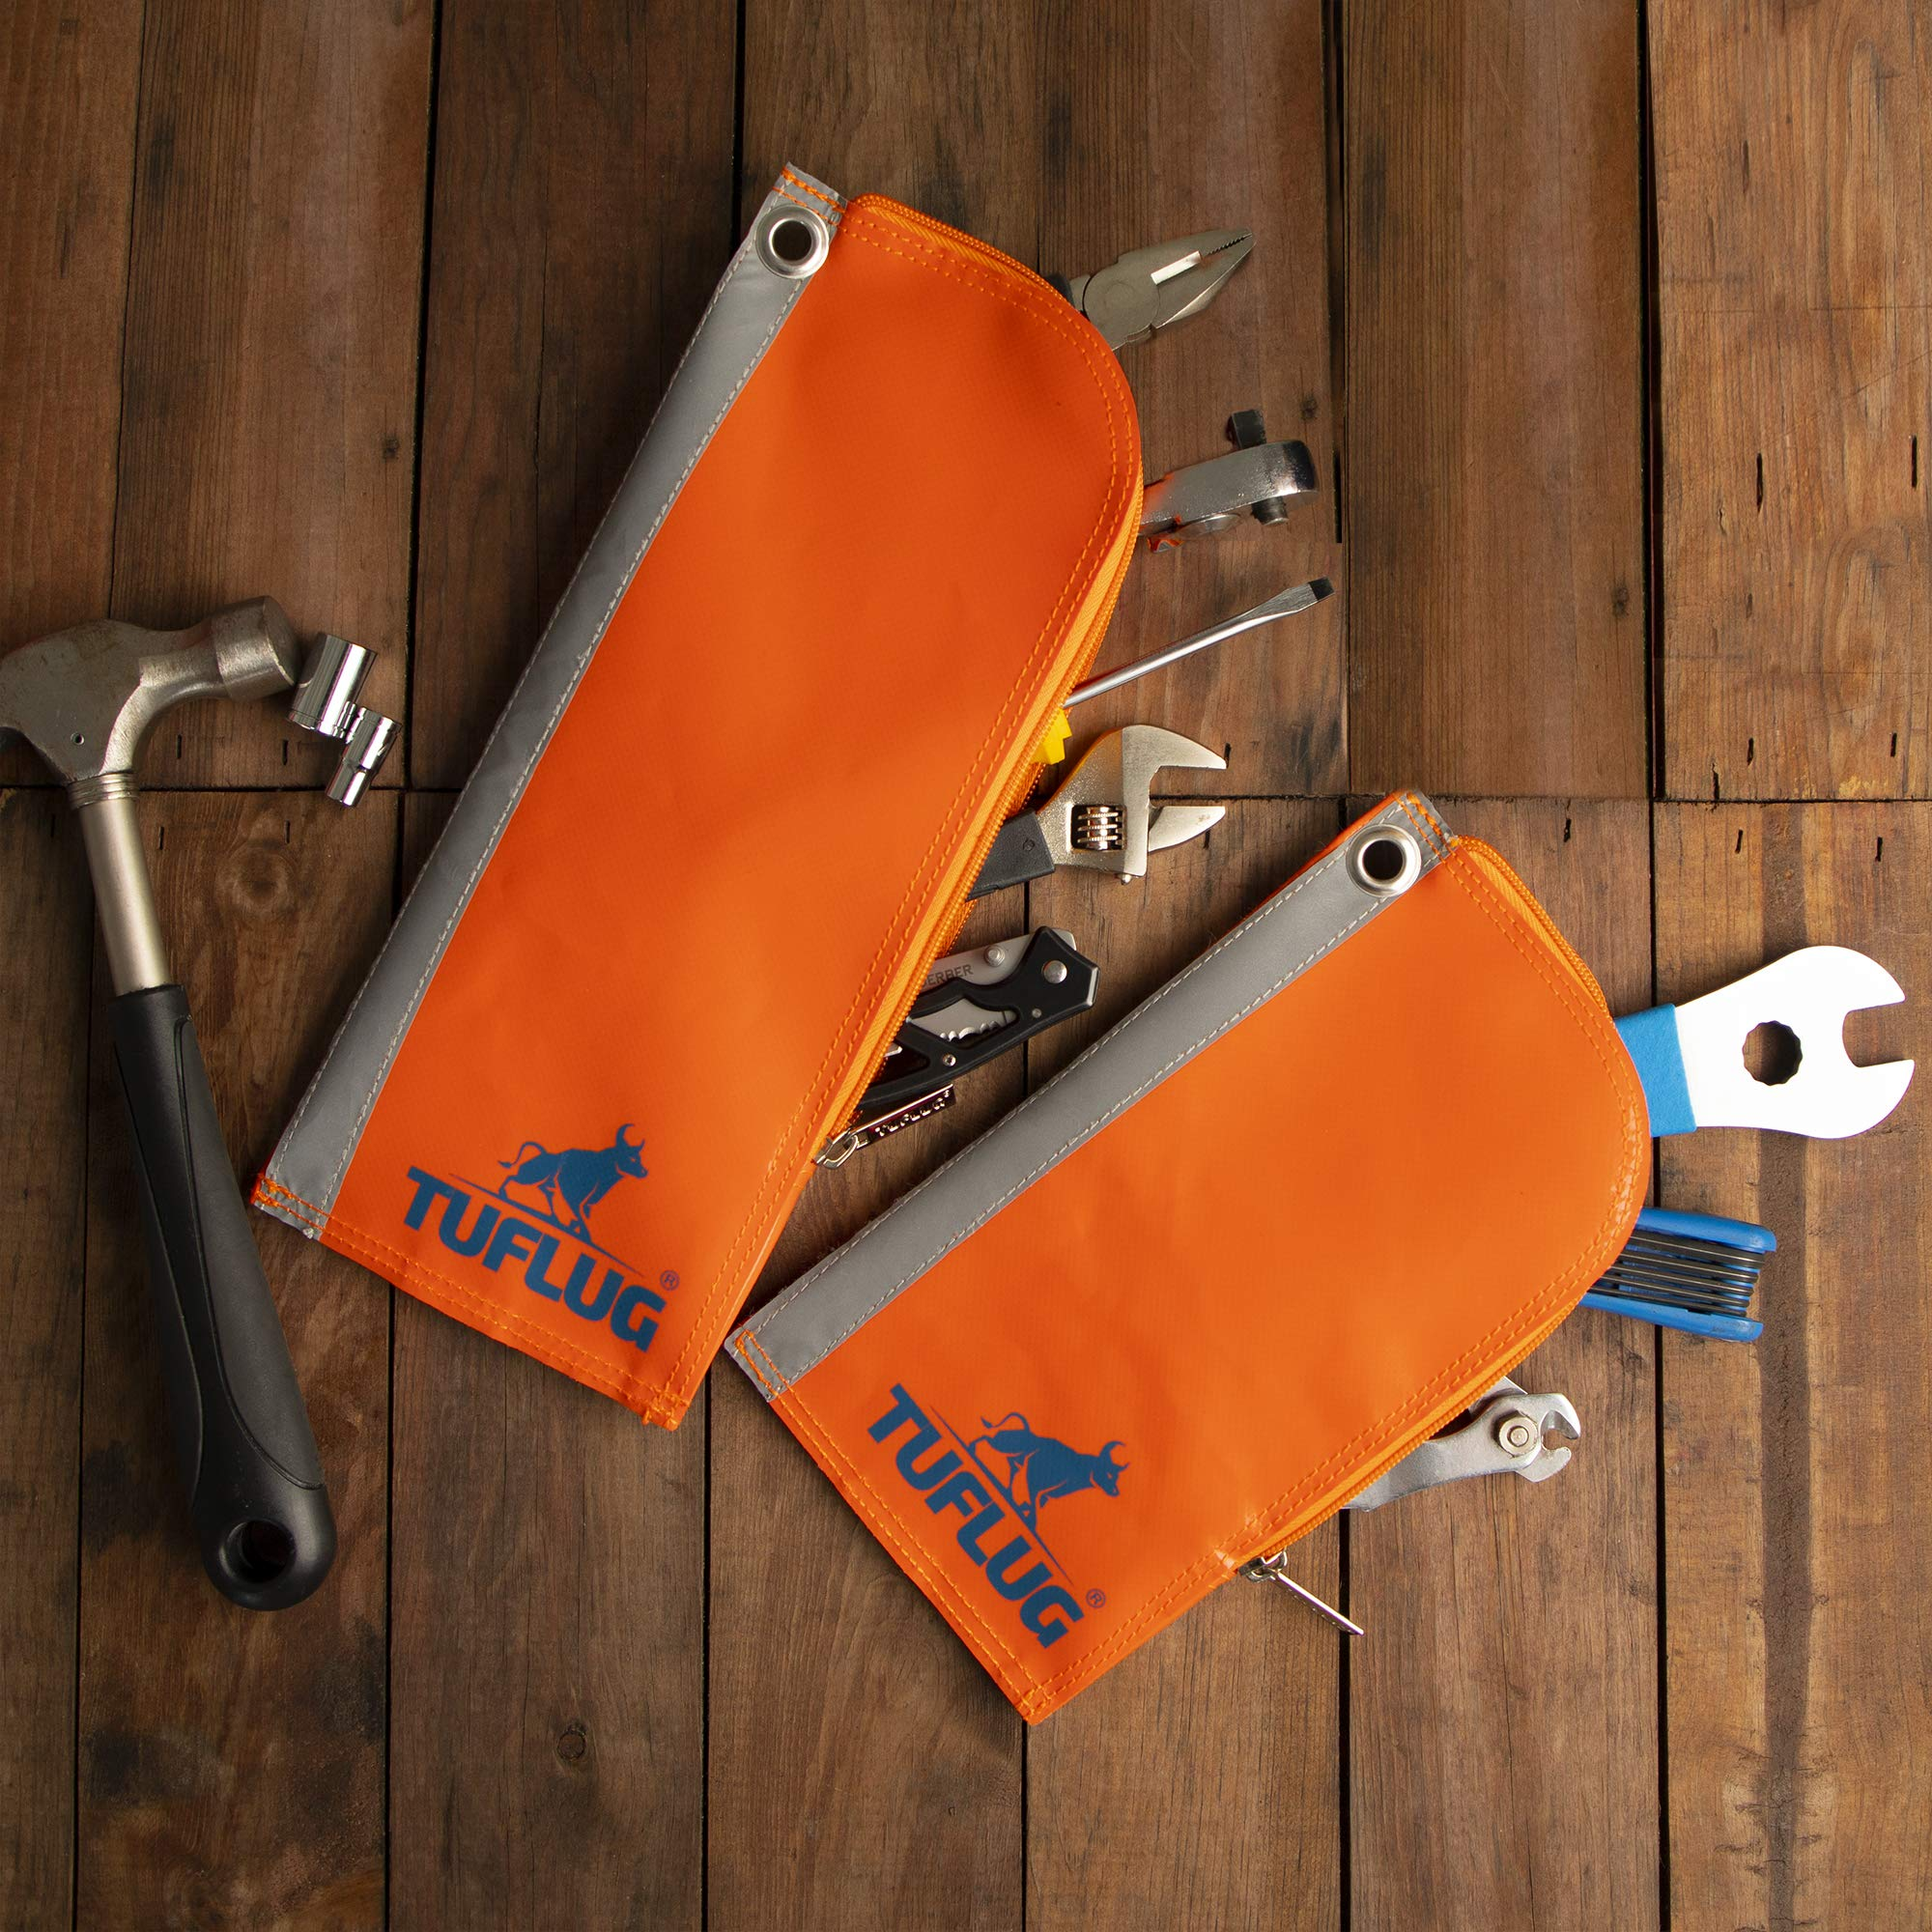 Heavy Duty Zipper Tool Pouch, 2 Pack, 12inch and 9inch - Waterproof, Lightweight, Multipurpose Utility Bag Carry Case For Small Tools - Storage Pouches, Accessories for Work Belts - PVC, Canvas by TUFLUG (Image #6)